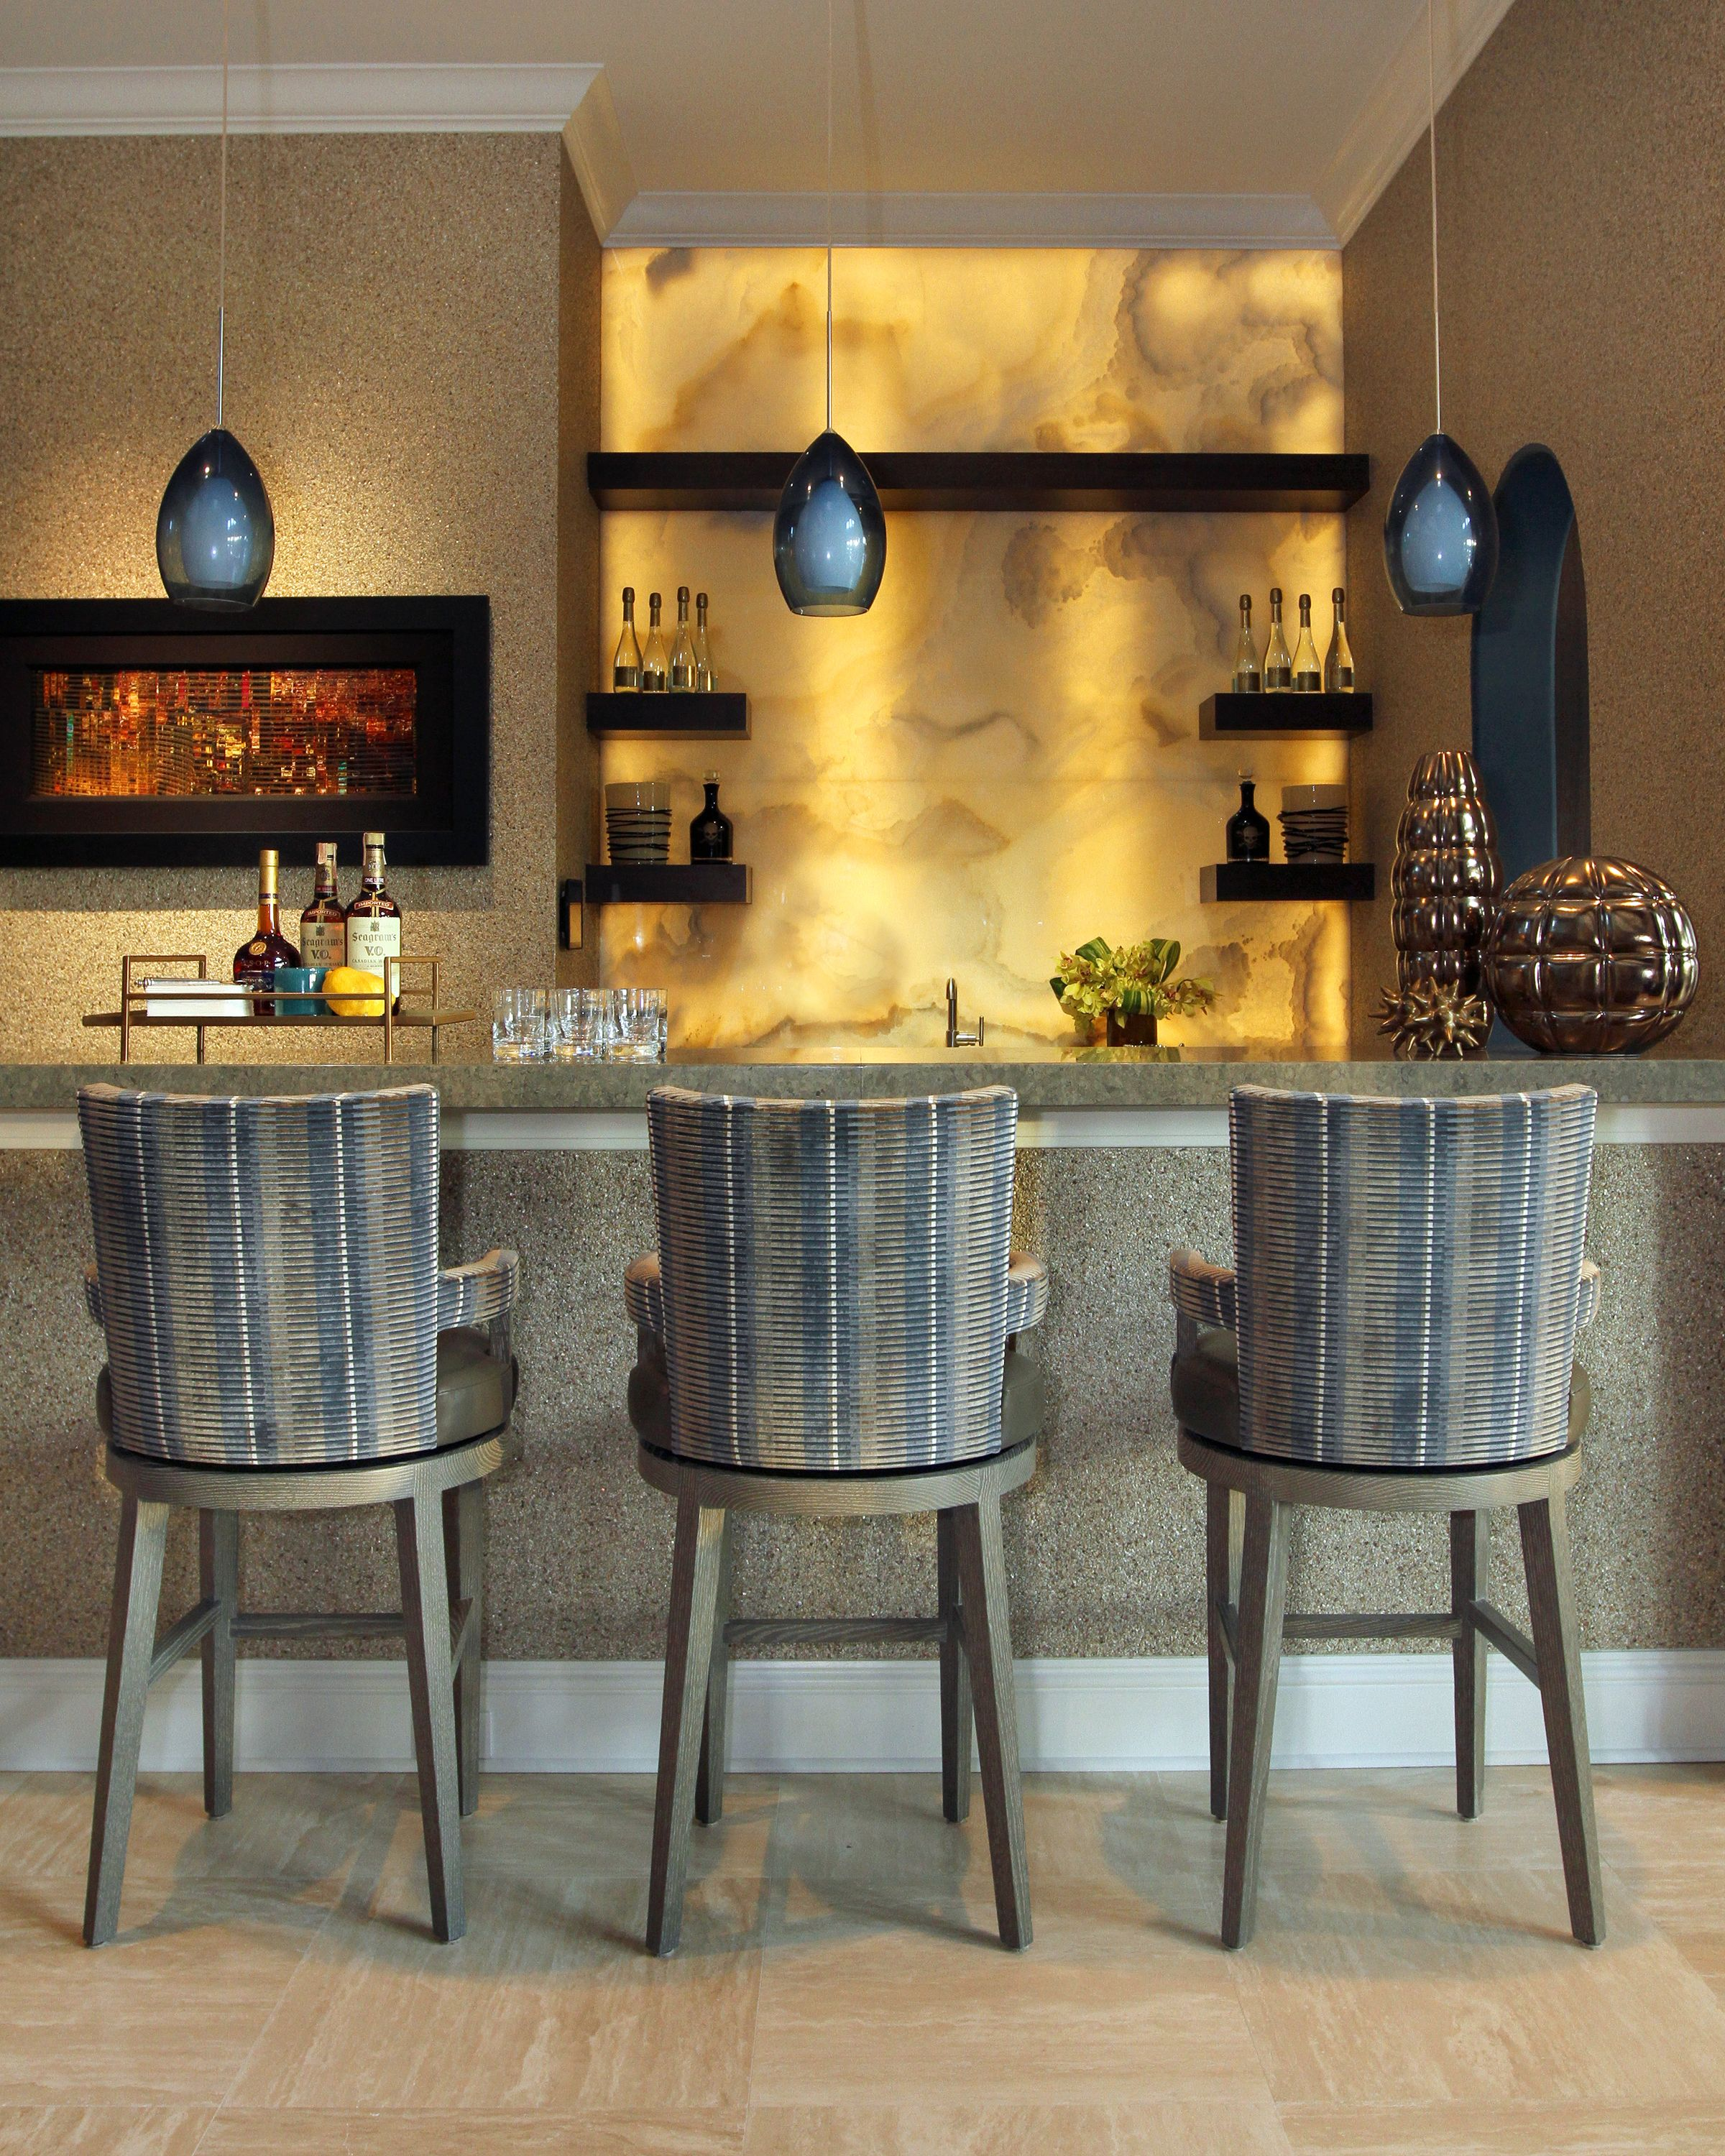 The backlit onyx wall creates a great focal point for the bar schulte 39 s designs pinterest - Wall bar counter ...